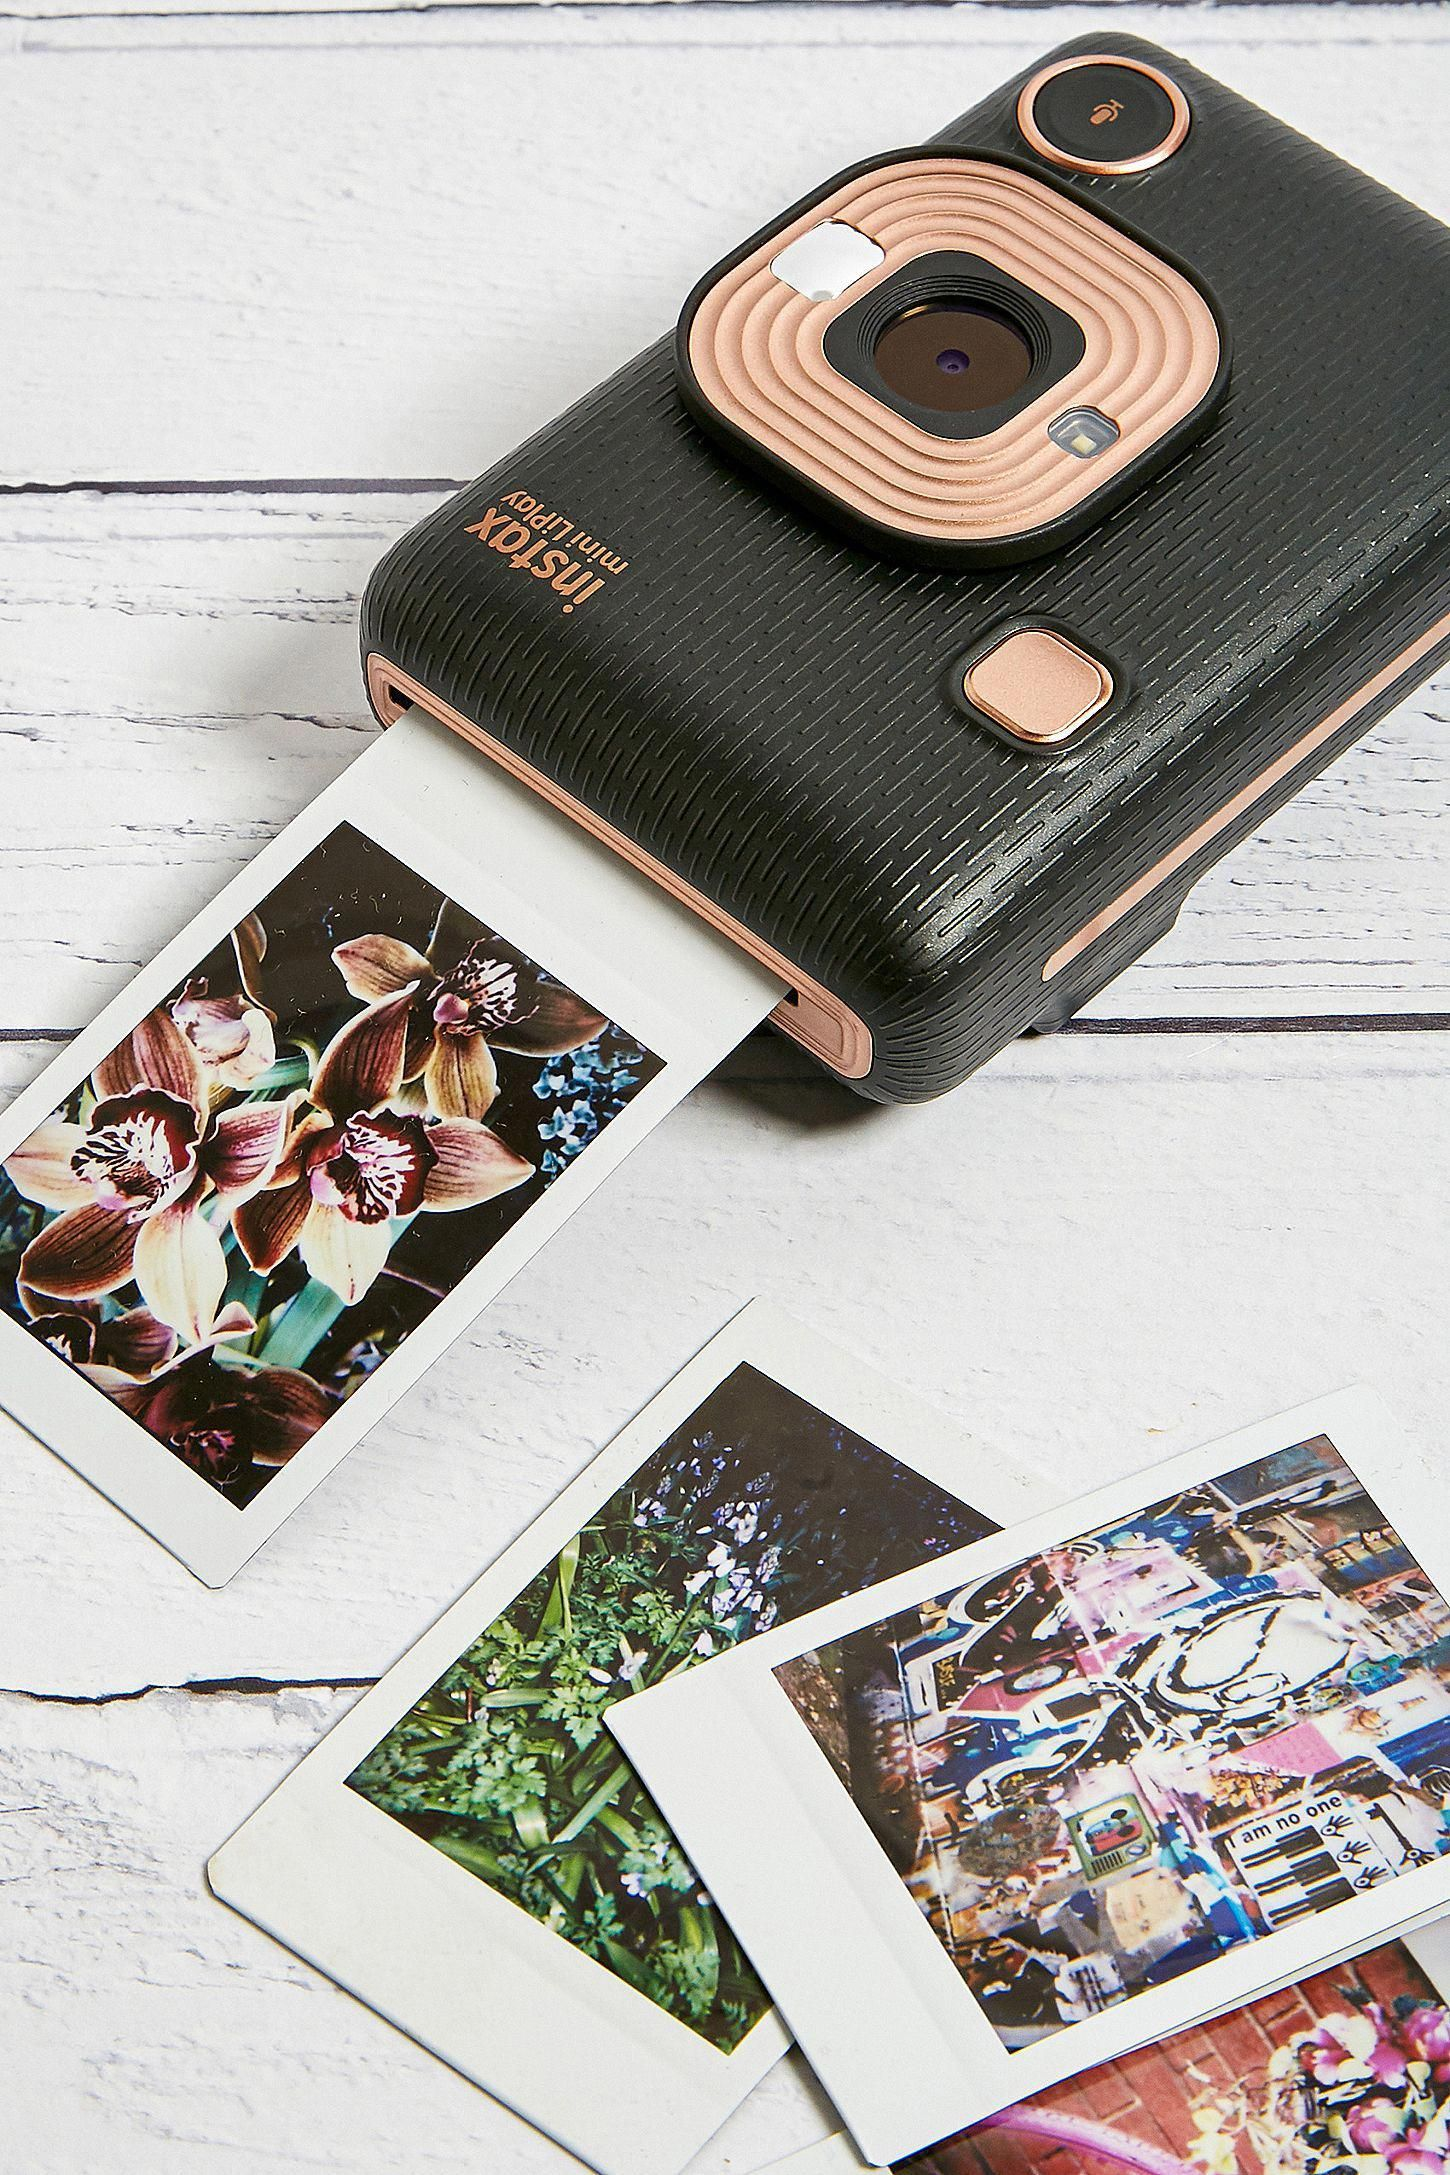 Fujifilm LiPlay Instax Mini Digital Instant Camera Urban